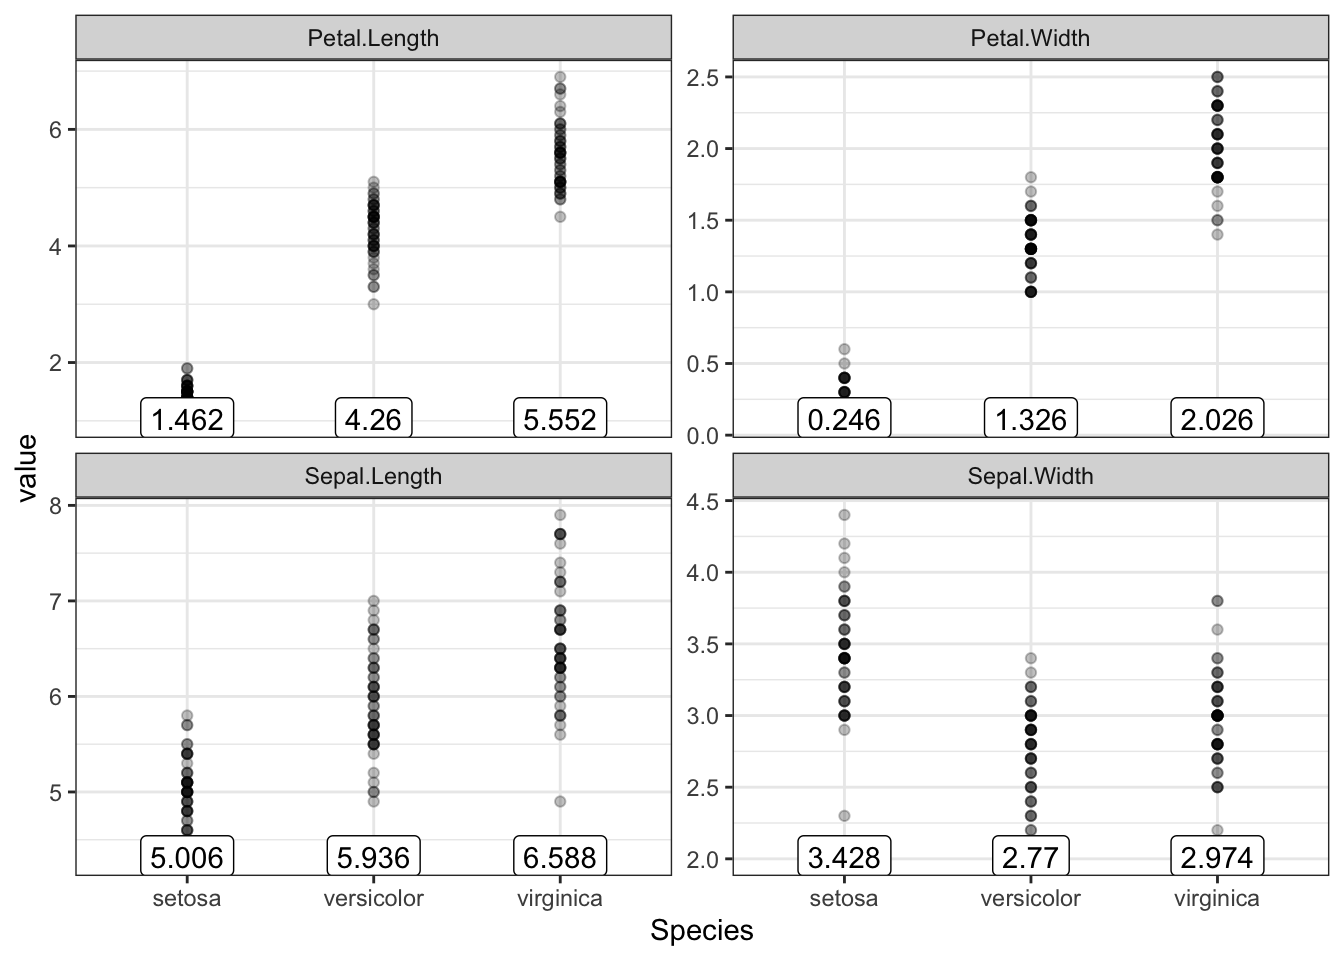 How to float ggplot2's geom_label()